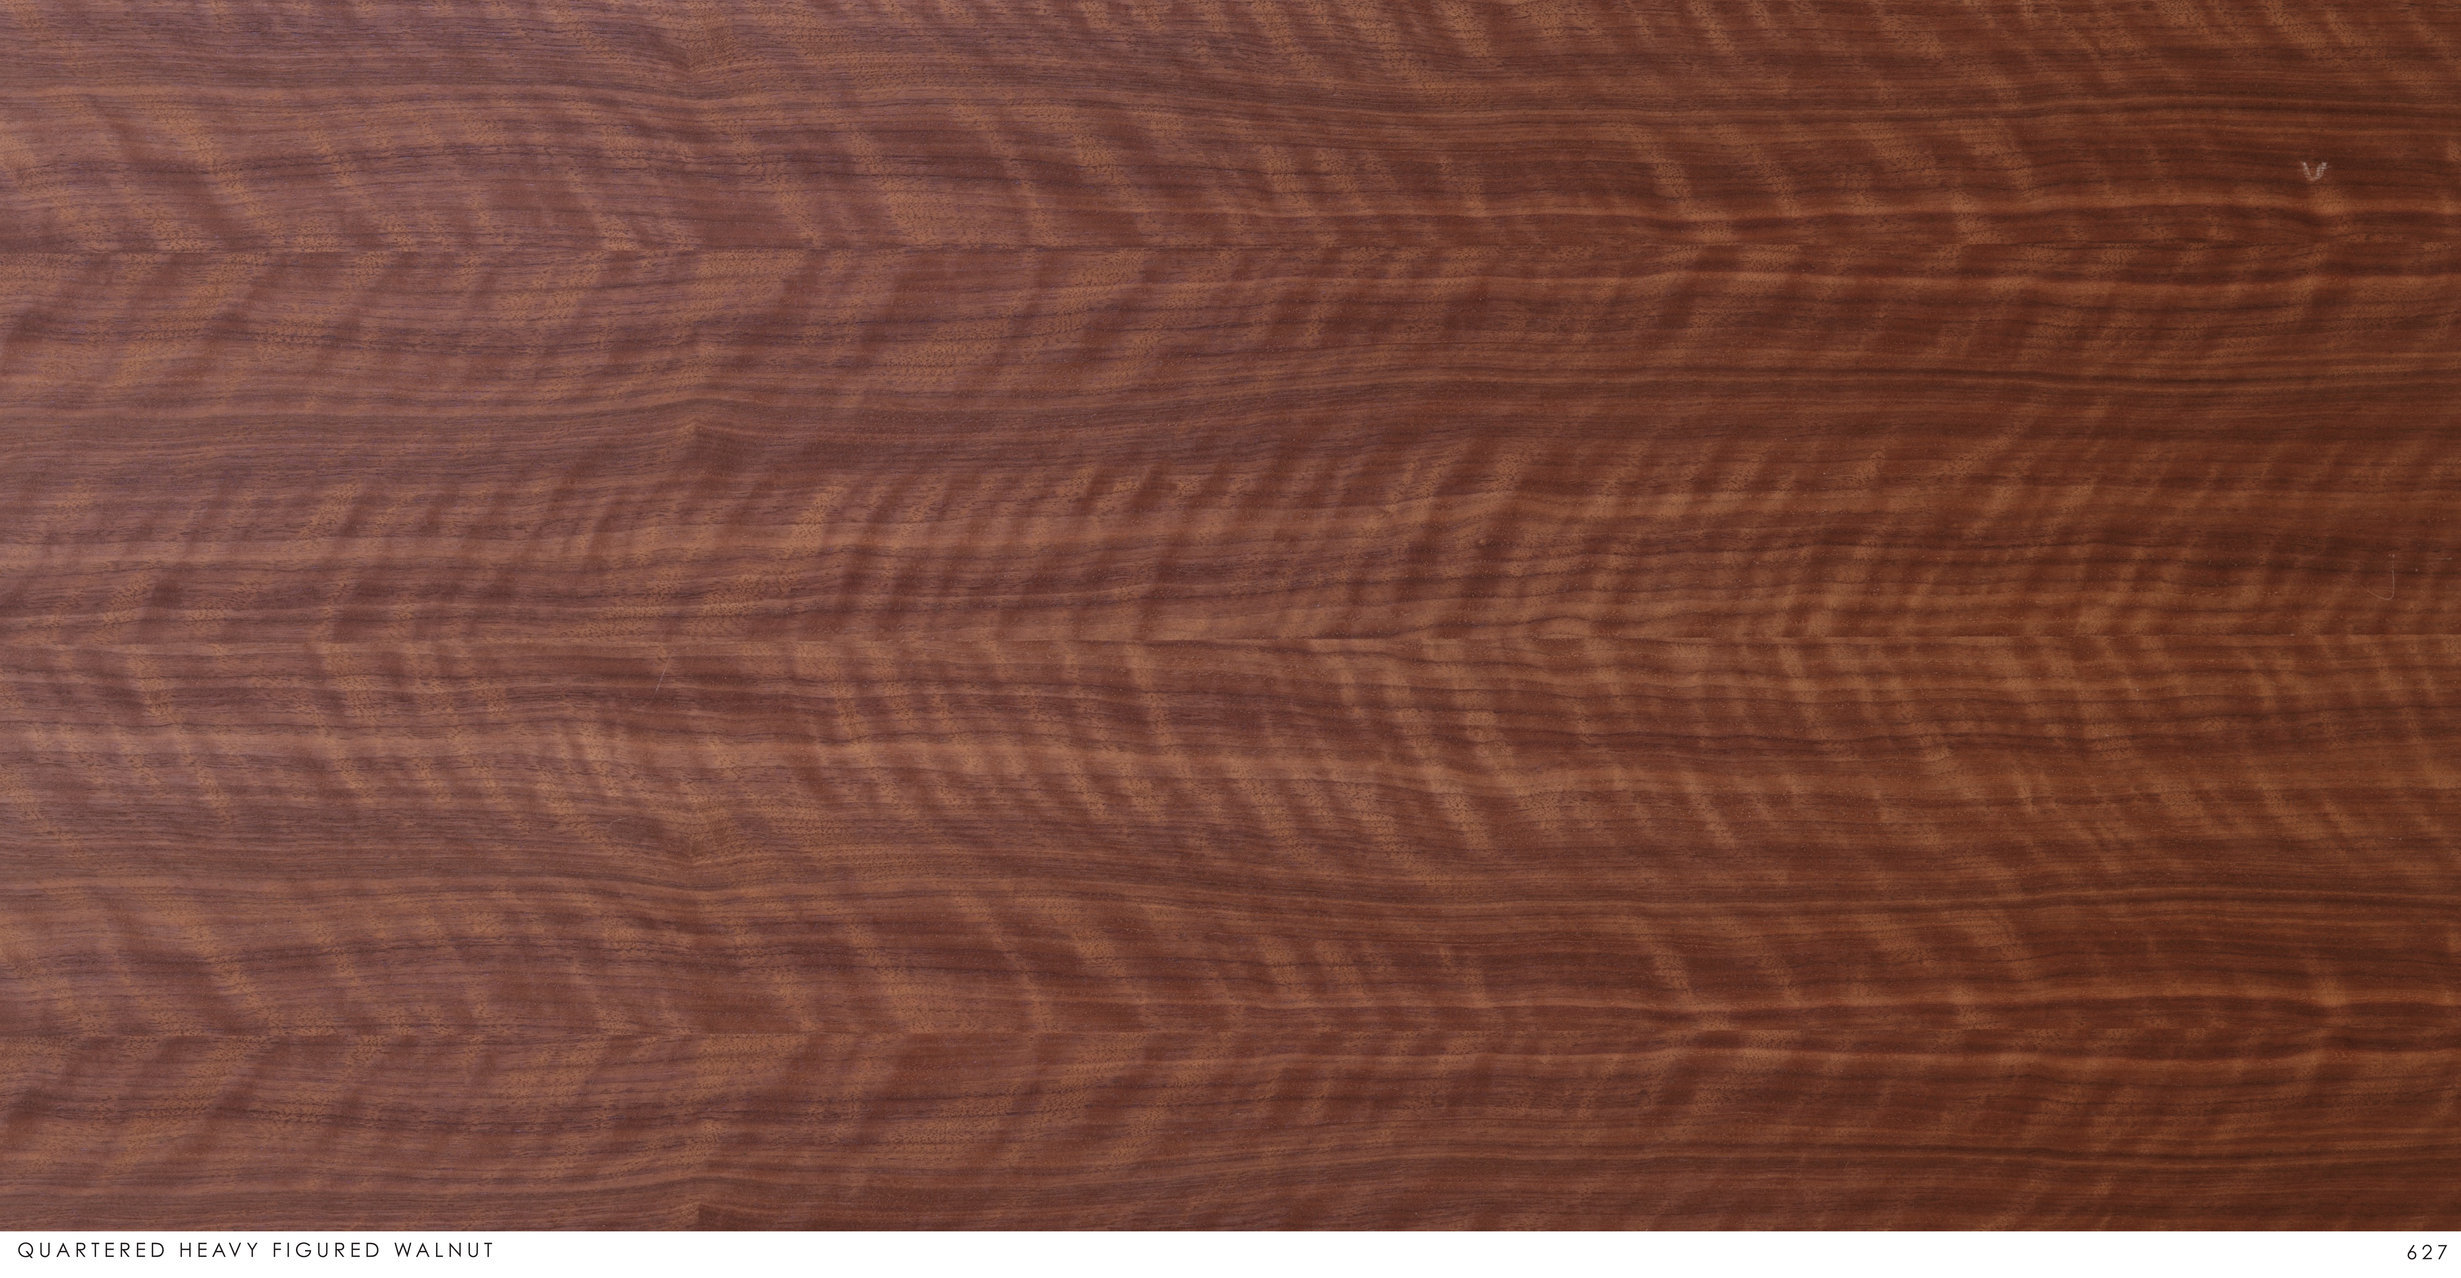 QUARTERED HEAVY FIGURED WALNUT 627.jpg